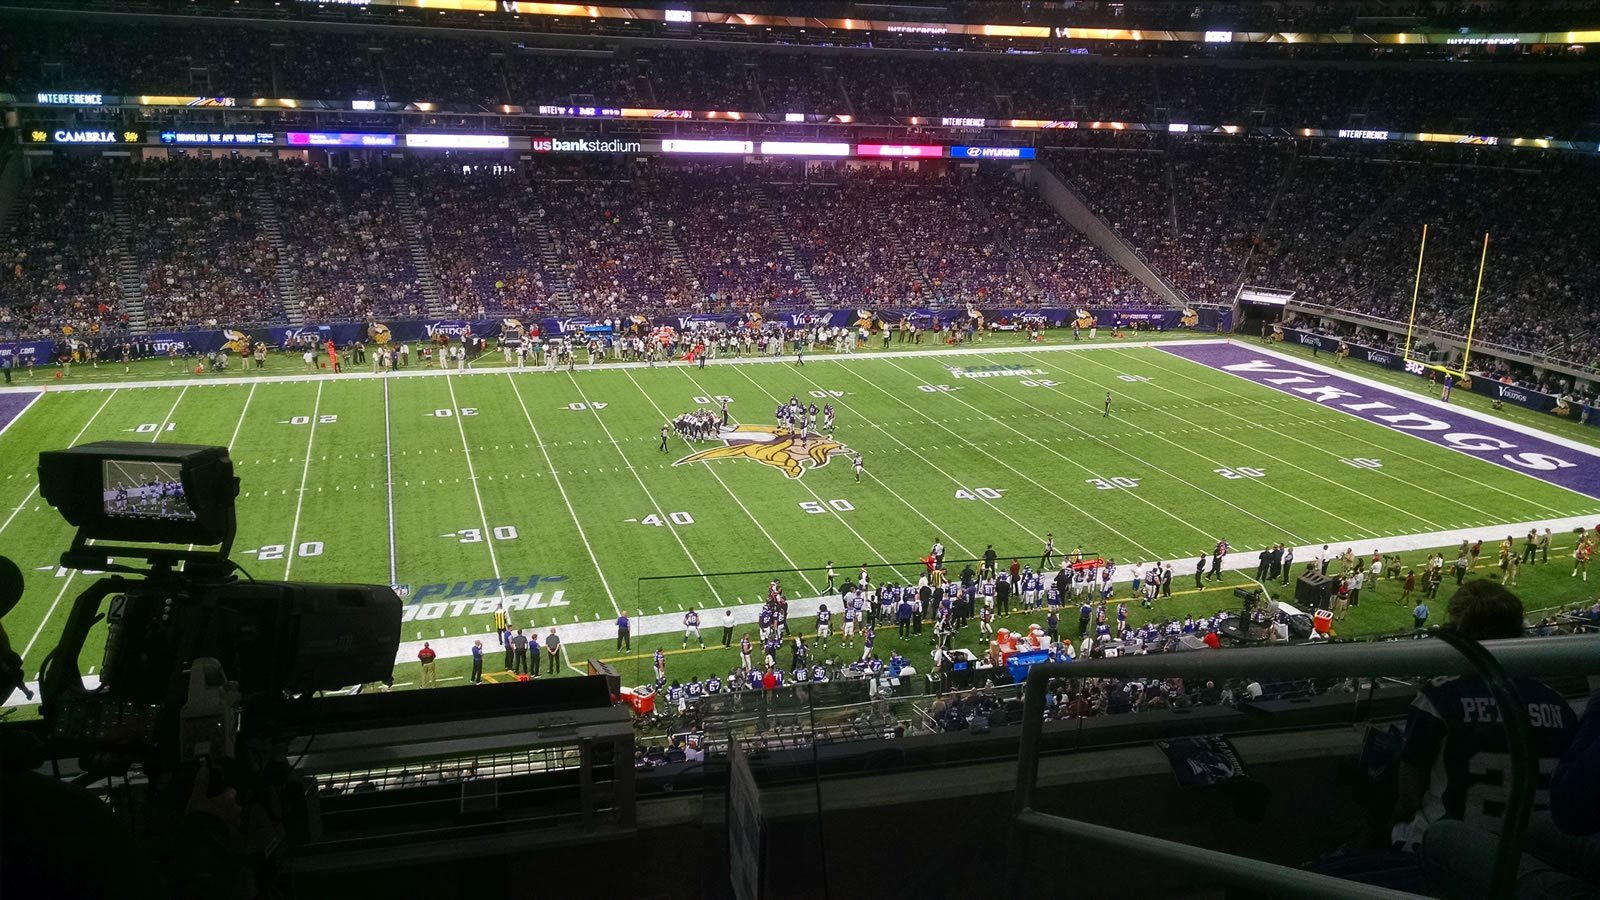 Seat View for U.S. Bank Stadium Fire Club 10, Row 4, Seat 1